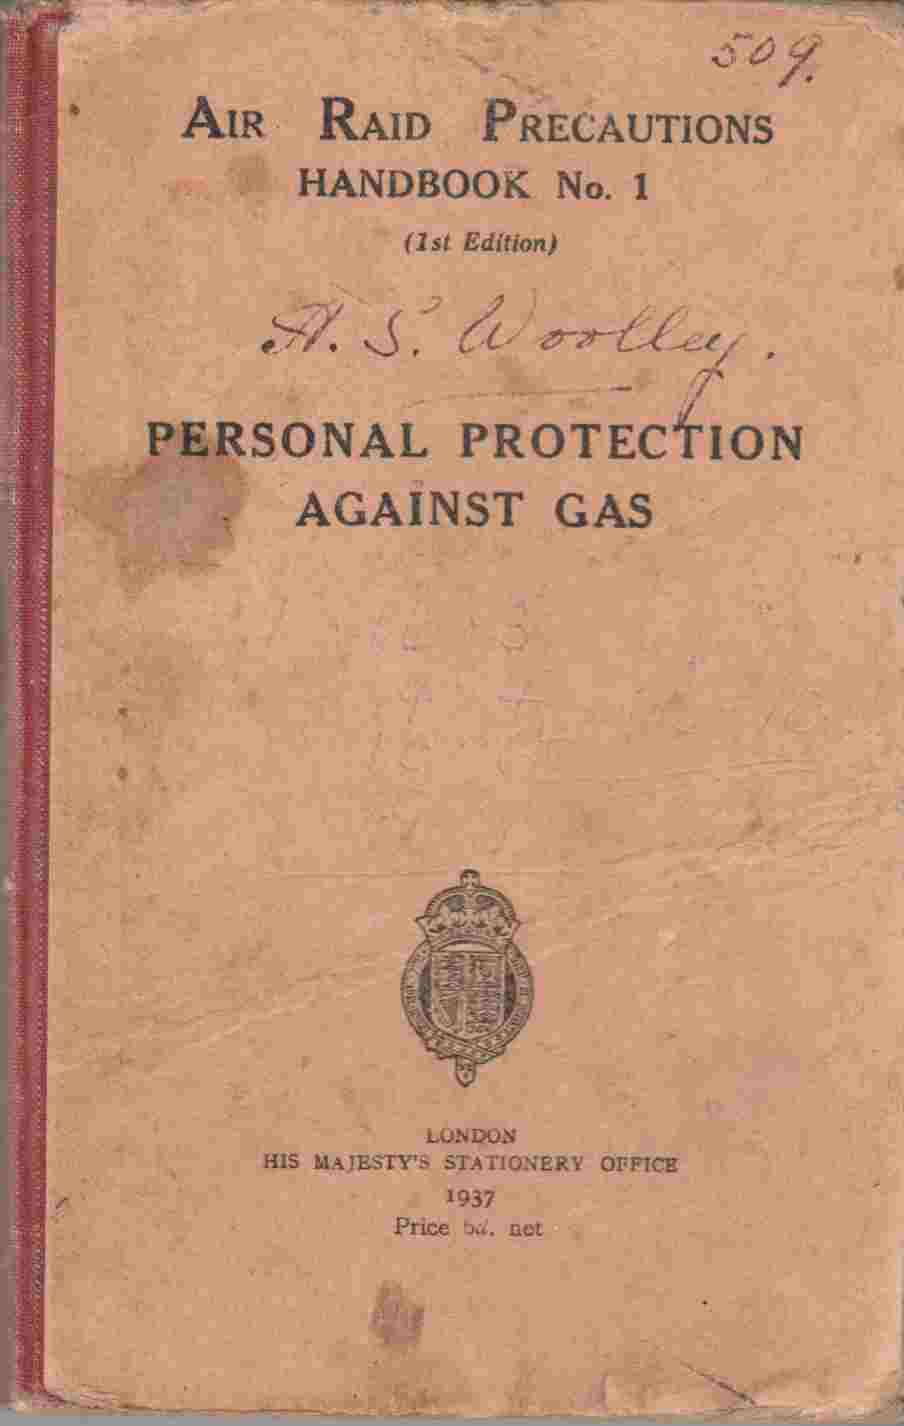 Image for Air Raid Precautions Handbook No. 1: Personal Protection Against Gas (1st Edition)